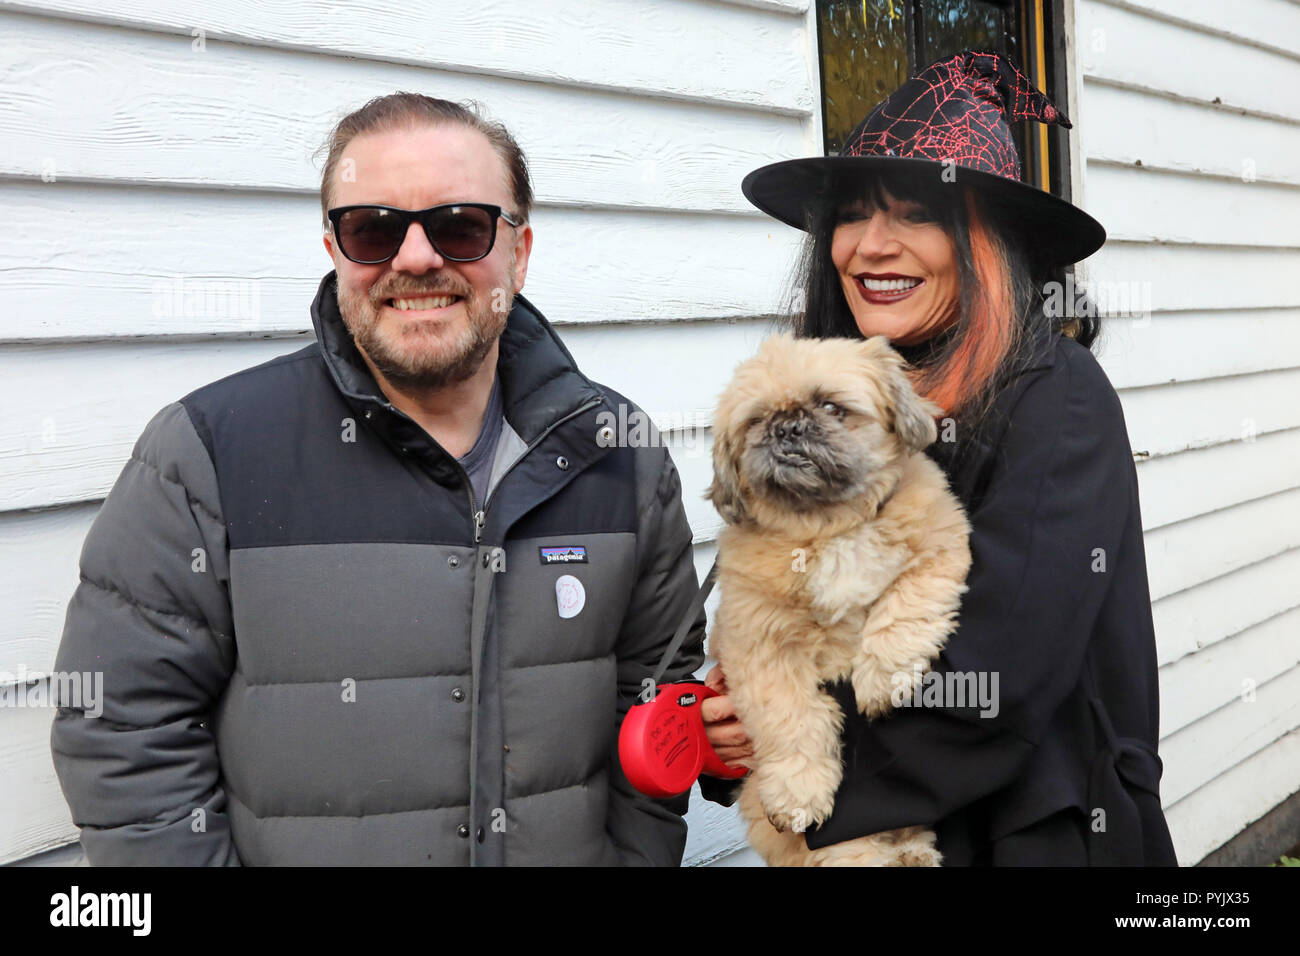 London, UK. 28th October 2018. Charity supporters Ricky Gervais and Michelle Collins with her dog Humphrey at the All Dogs Matter Halloween Dog Walk, Hampstead Heath, London, UK. The annual walk takes place to raise funds for the charity which rehouses and finds homes for dogs. Credit: Paul Brown/Alamy Live News - Stock Image